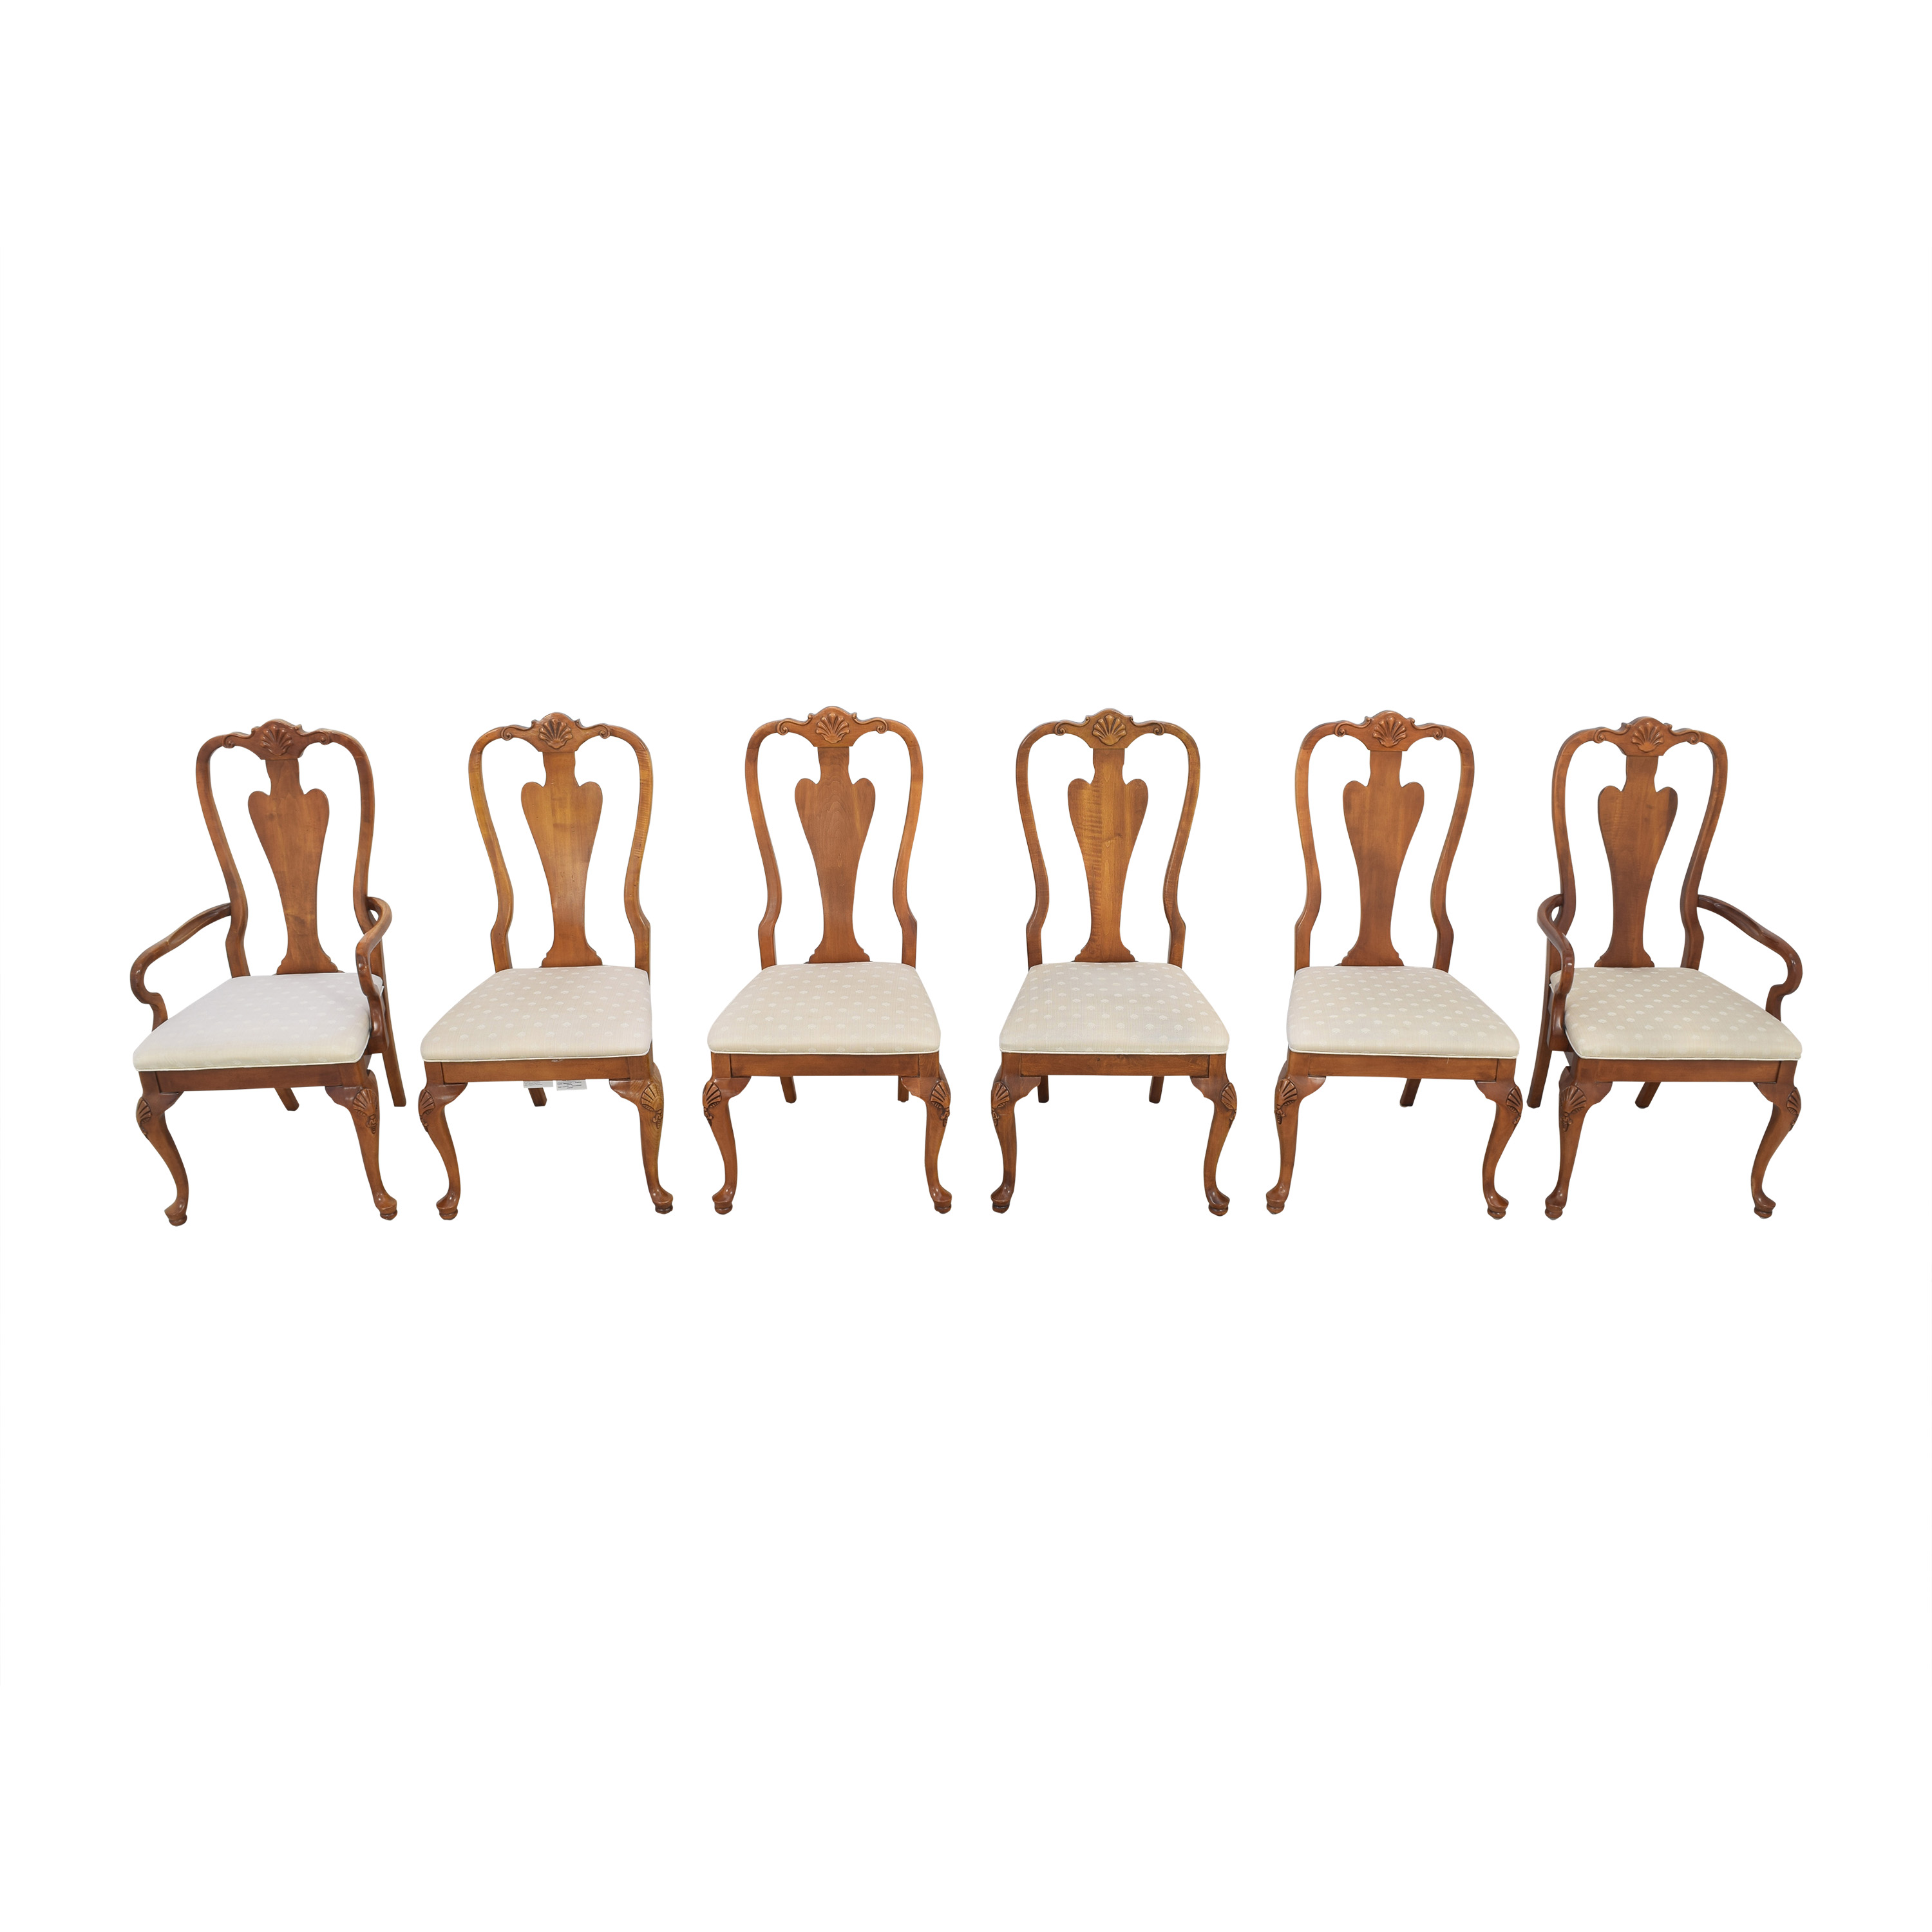 Broyhill Premier Queen Anne Dining Chairs / Chairs